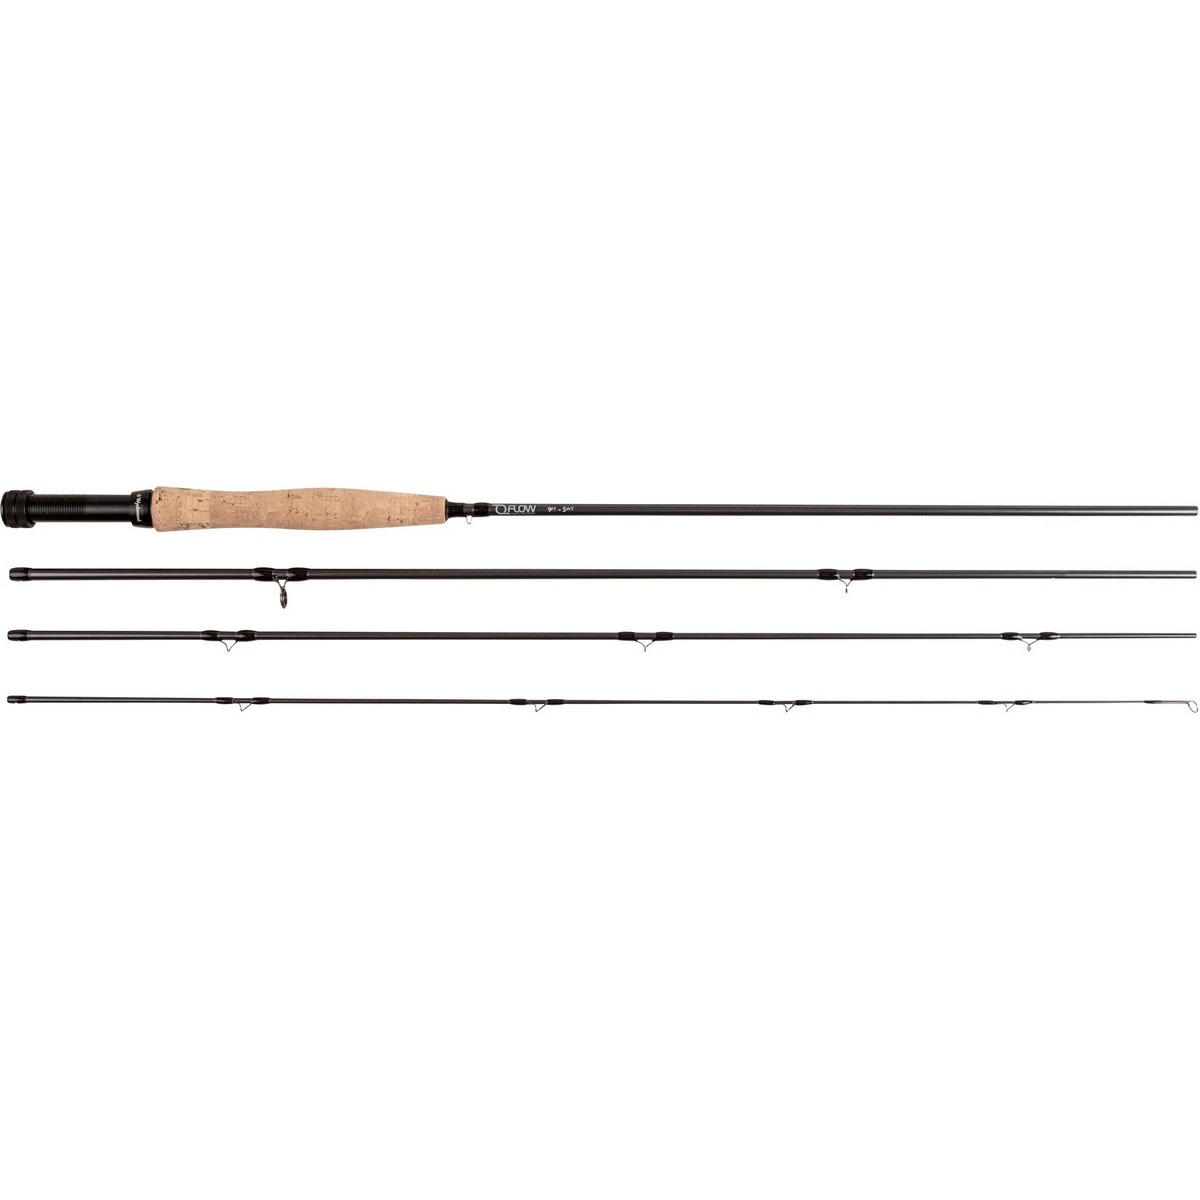 Wychwood Muškařský prut Flow Fly Rod 11ft, #4